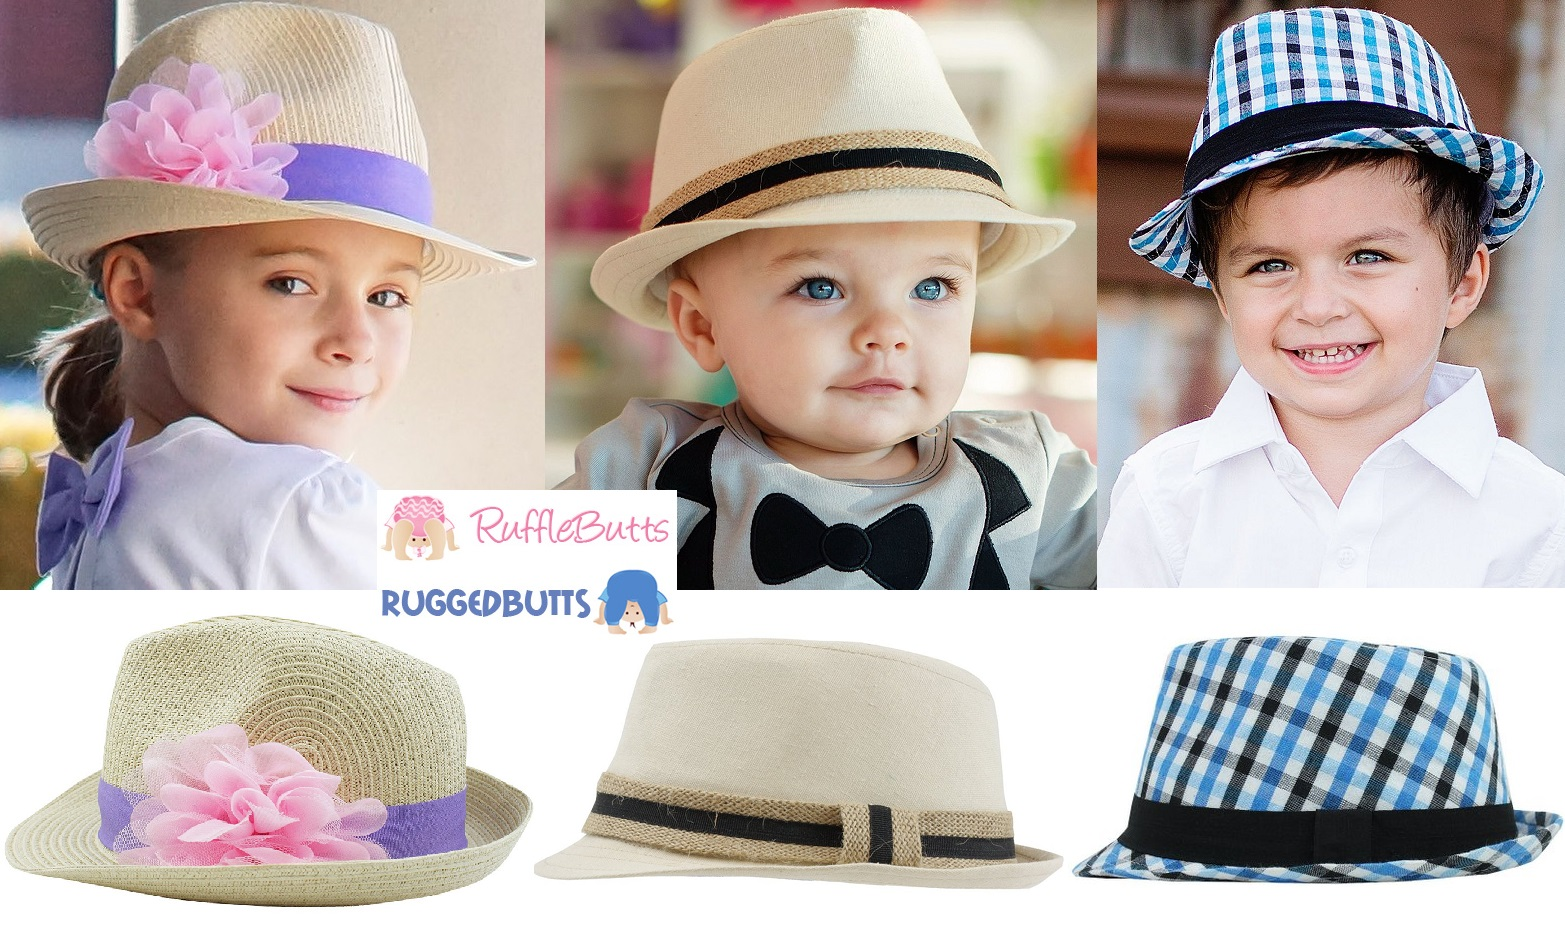 rufflebutts-ruggedbutts-fedora-all.jpg